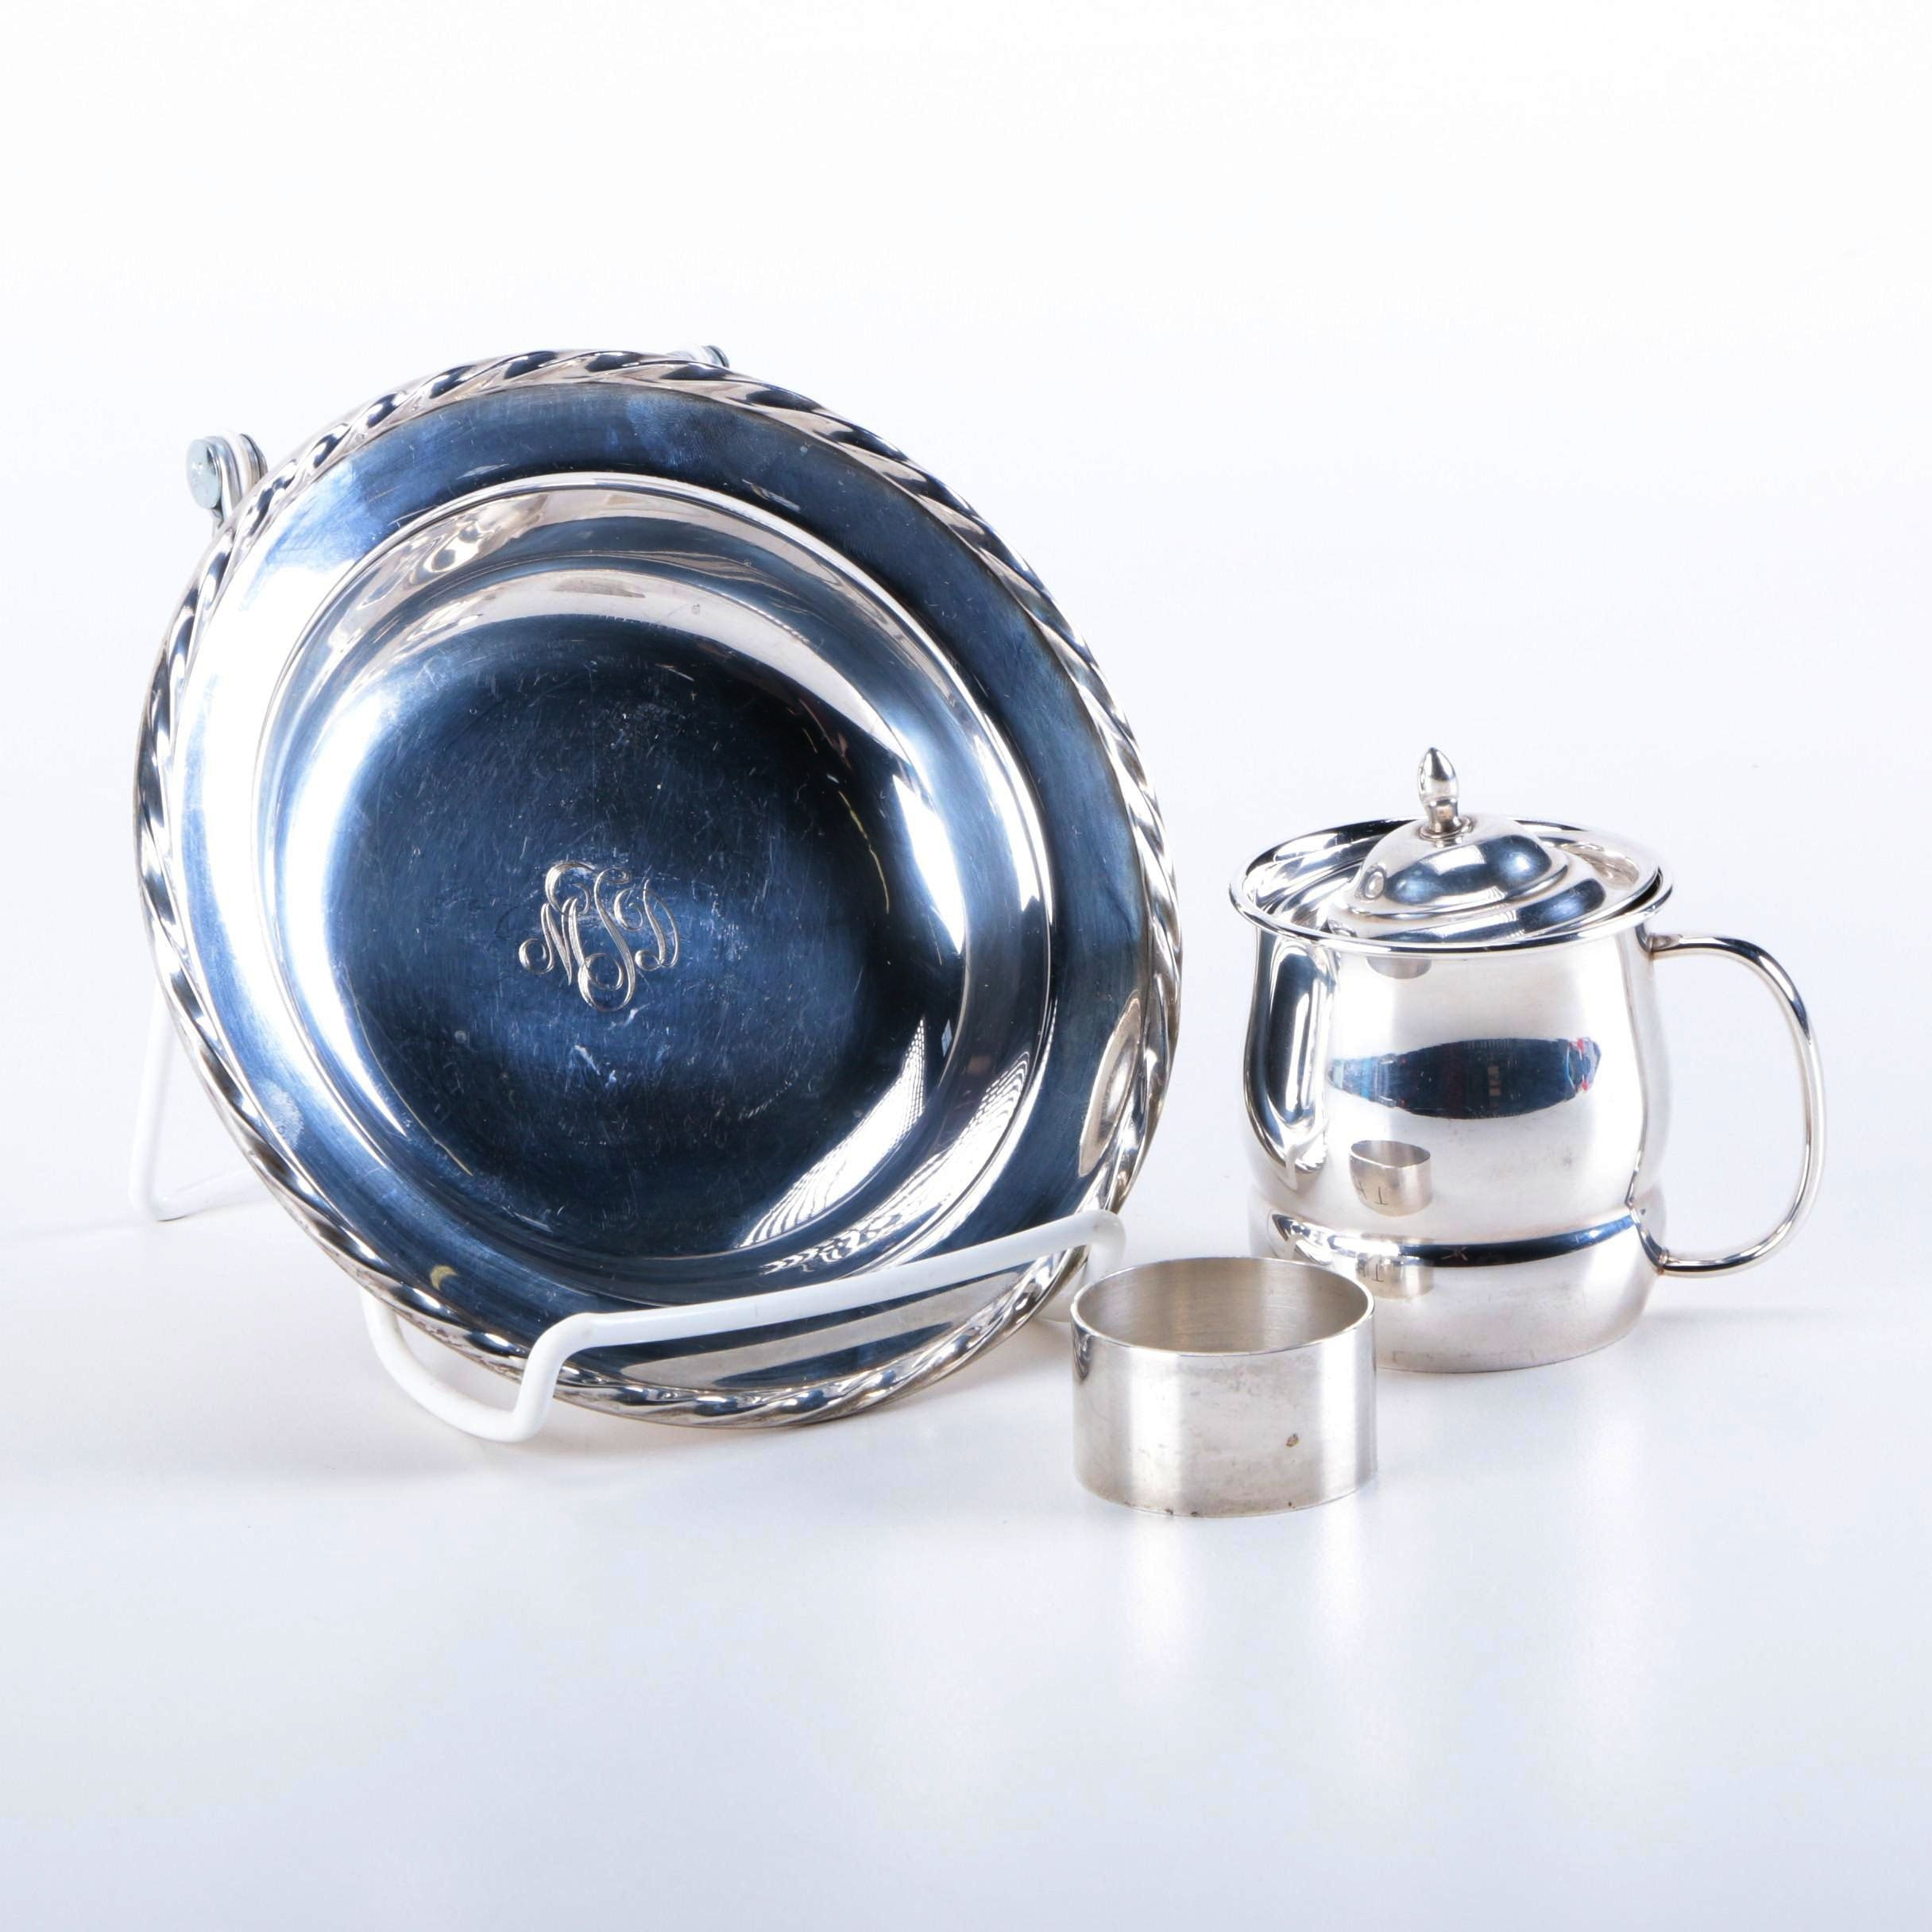 Sterling Silver Towle Dish and Cup With Stieff Napkin Ring